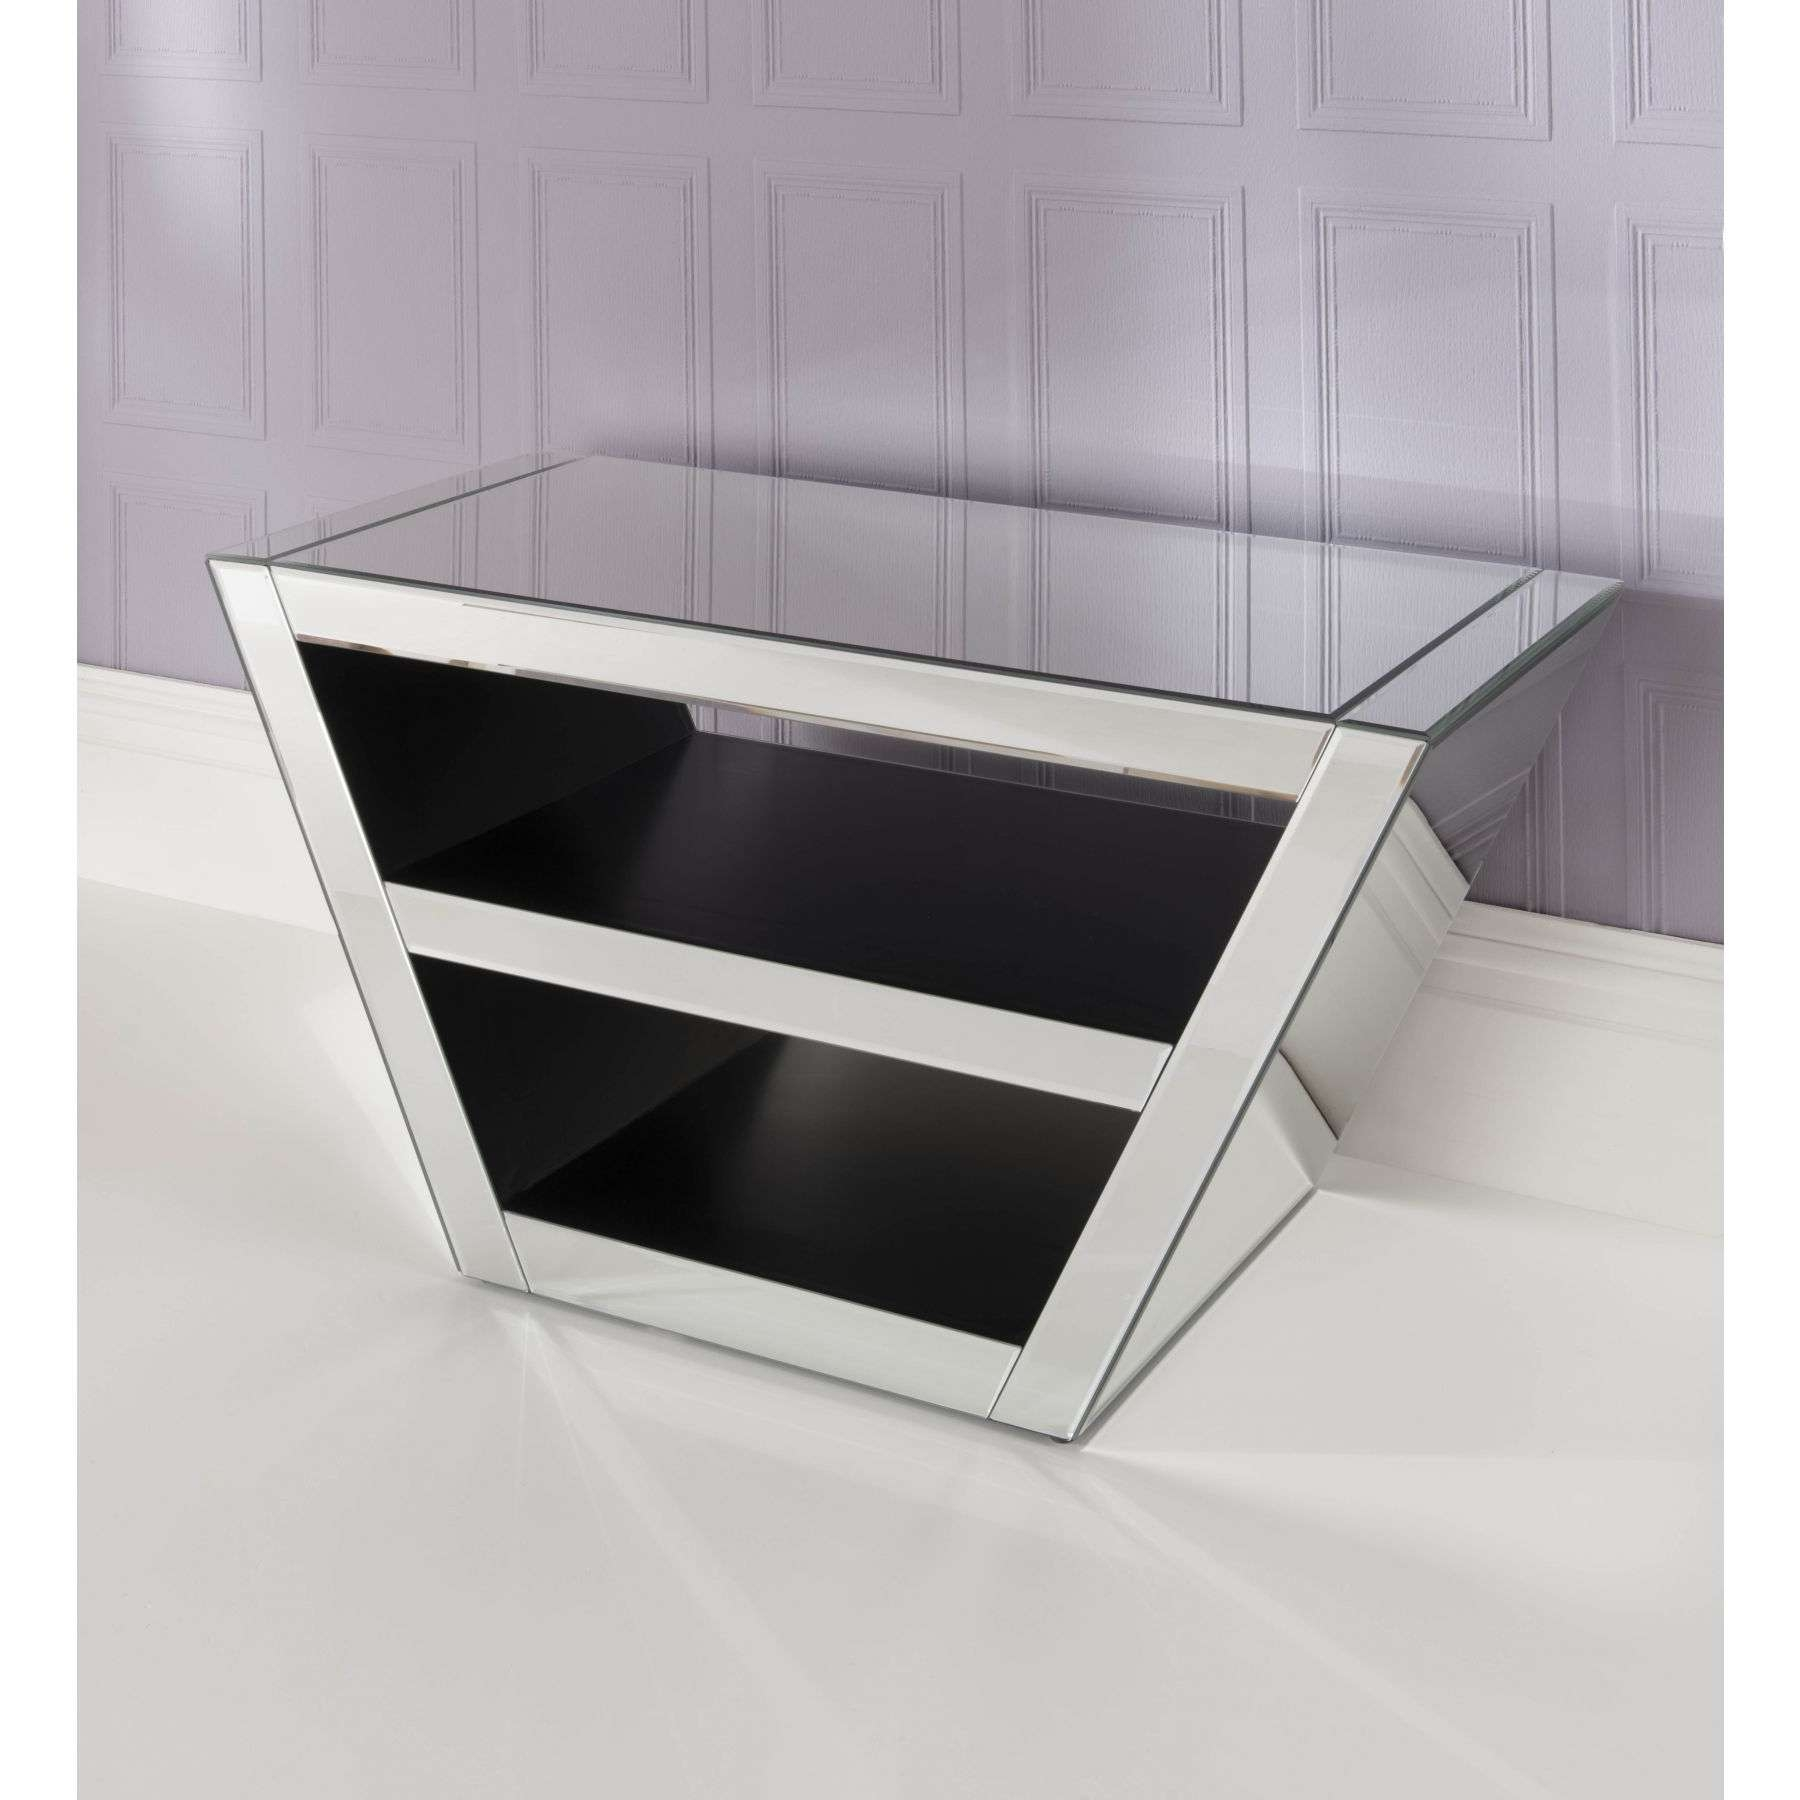 Mirrored Tv Cabinet | Venetian Glass Tv Stand | Homesdirect365 With Tv Cabinets (View 11 of 20)